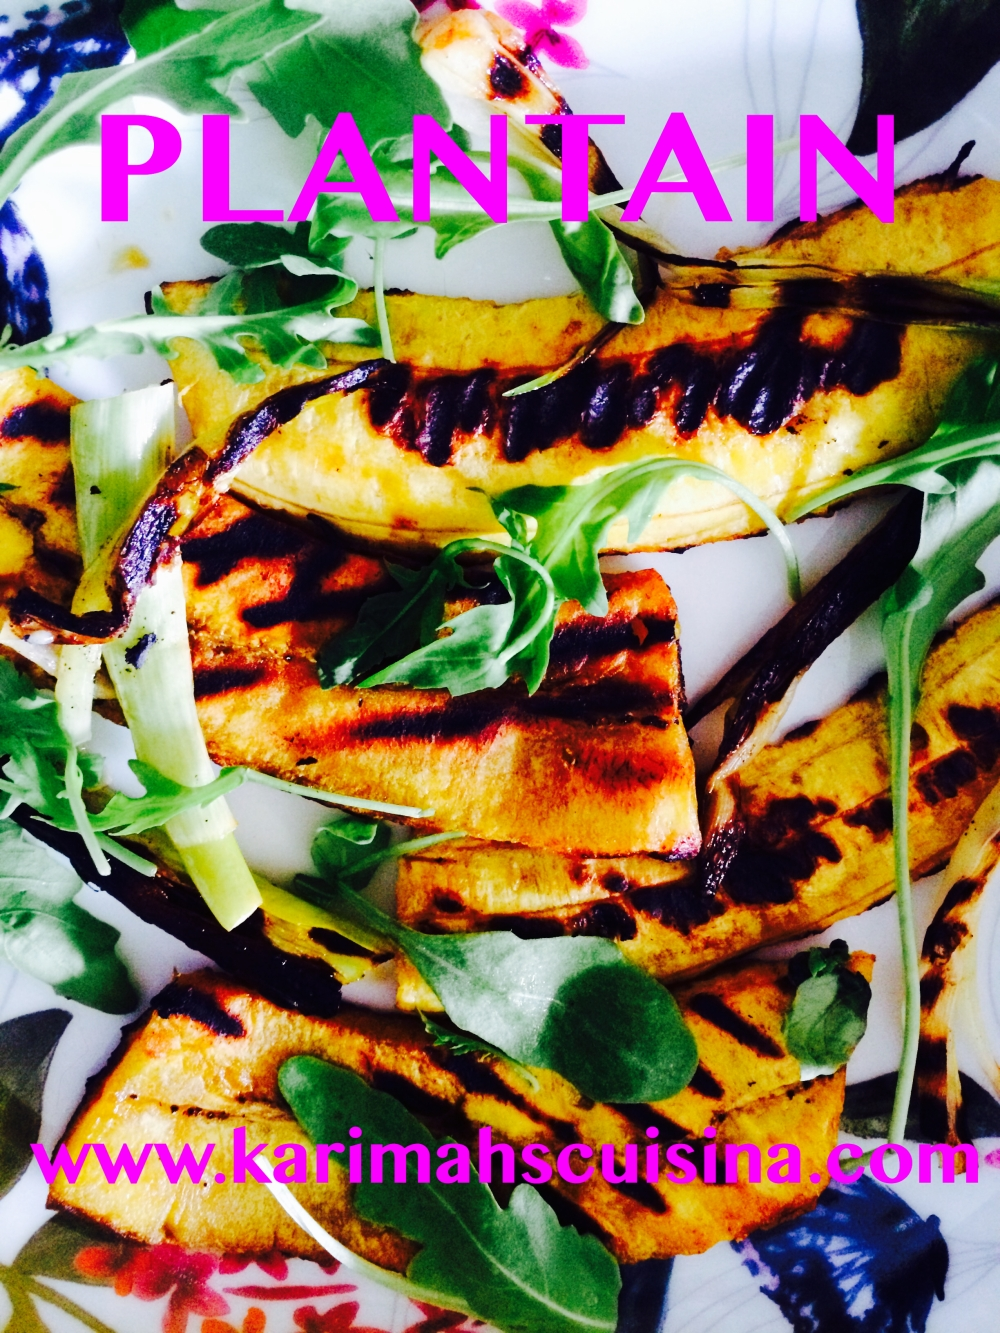 banana plantain fish 005